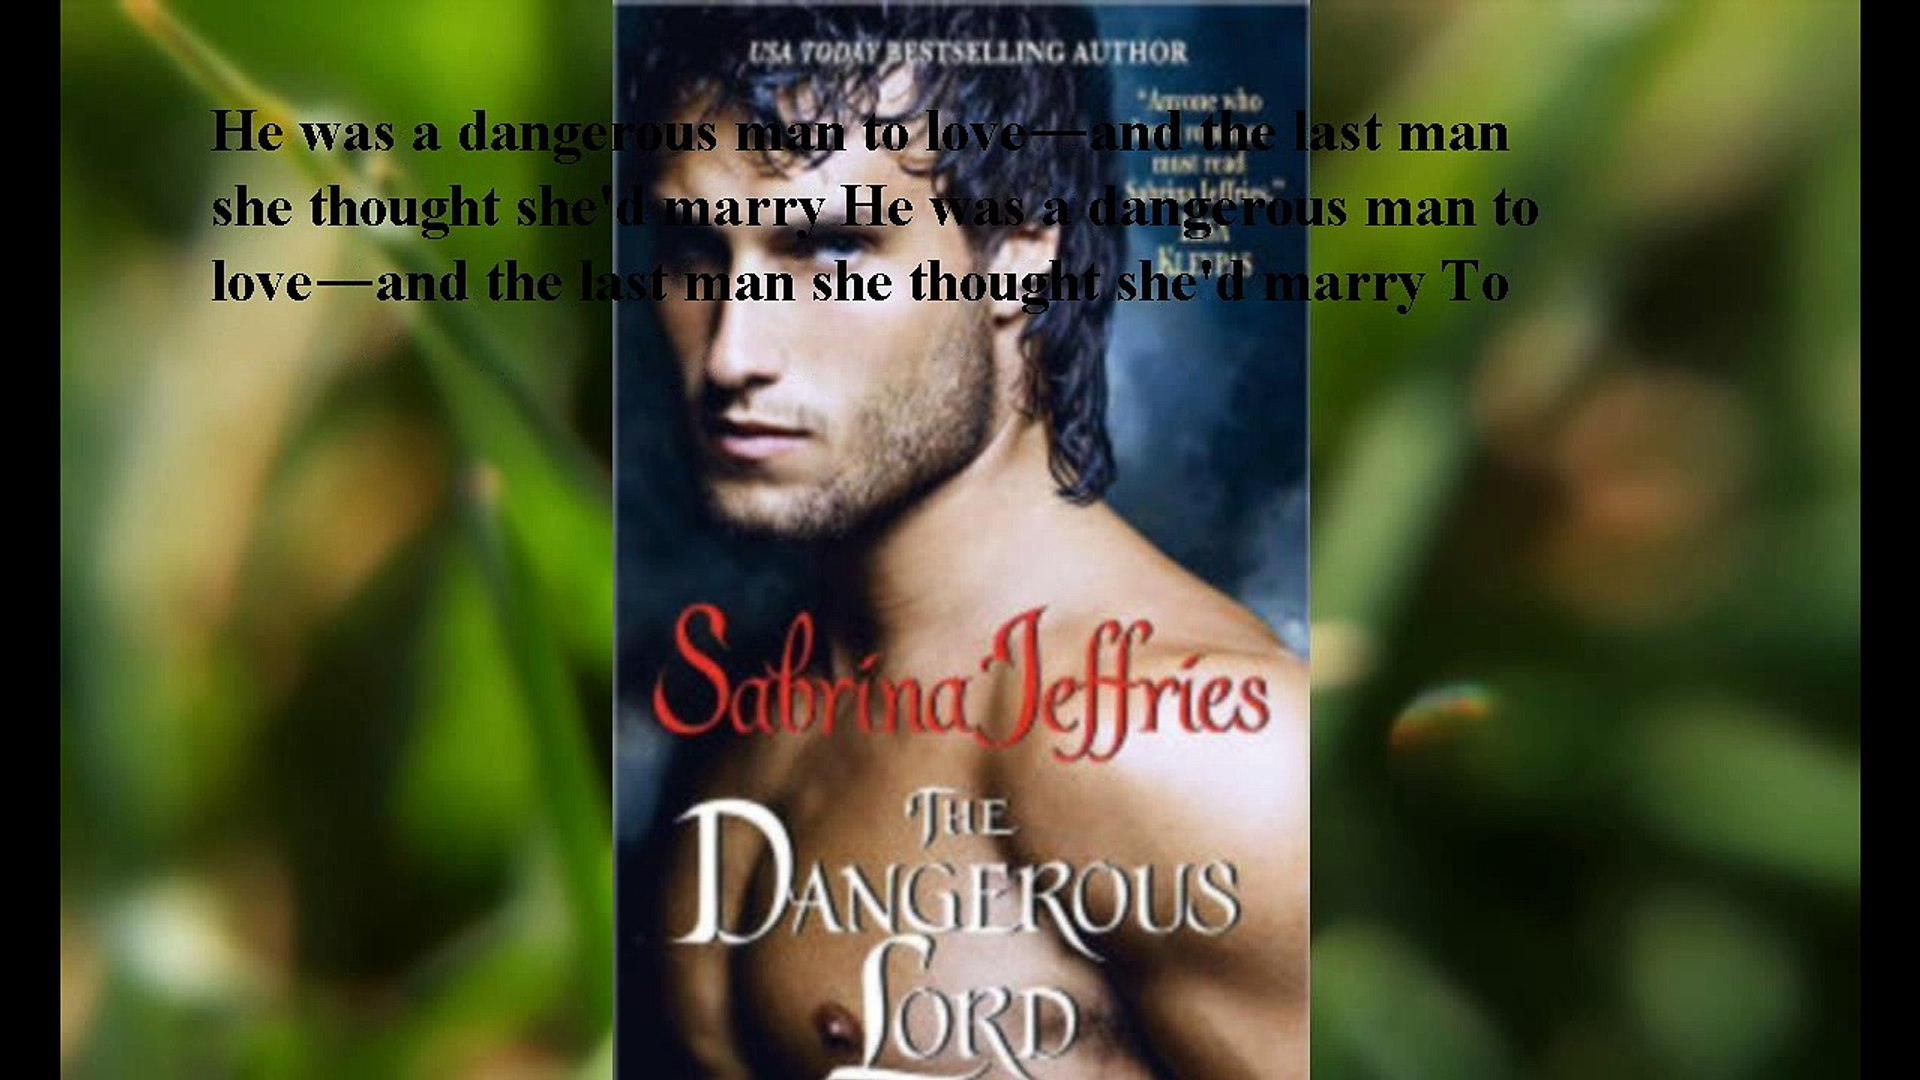 Download The Dangerous Lord (Lord Trilogy Series #3) ebook PDF